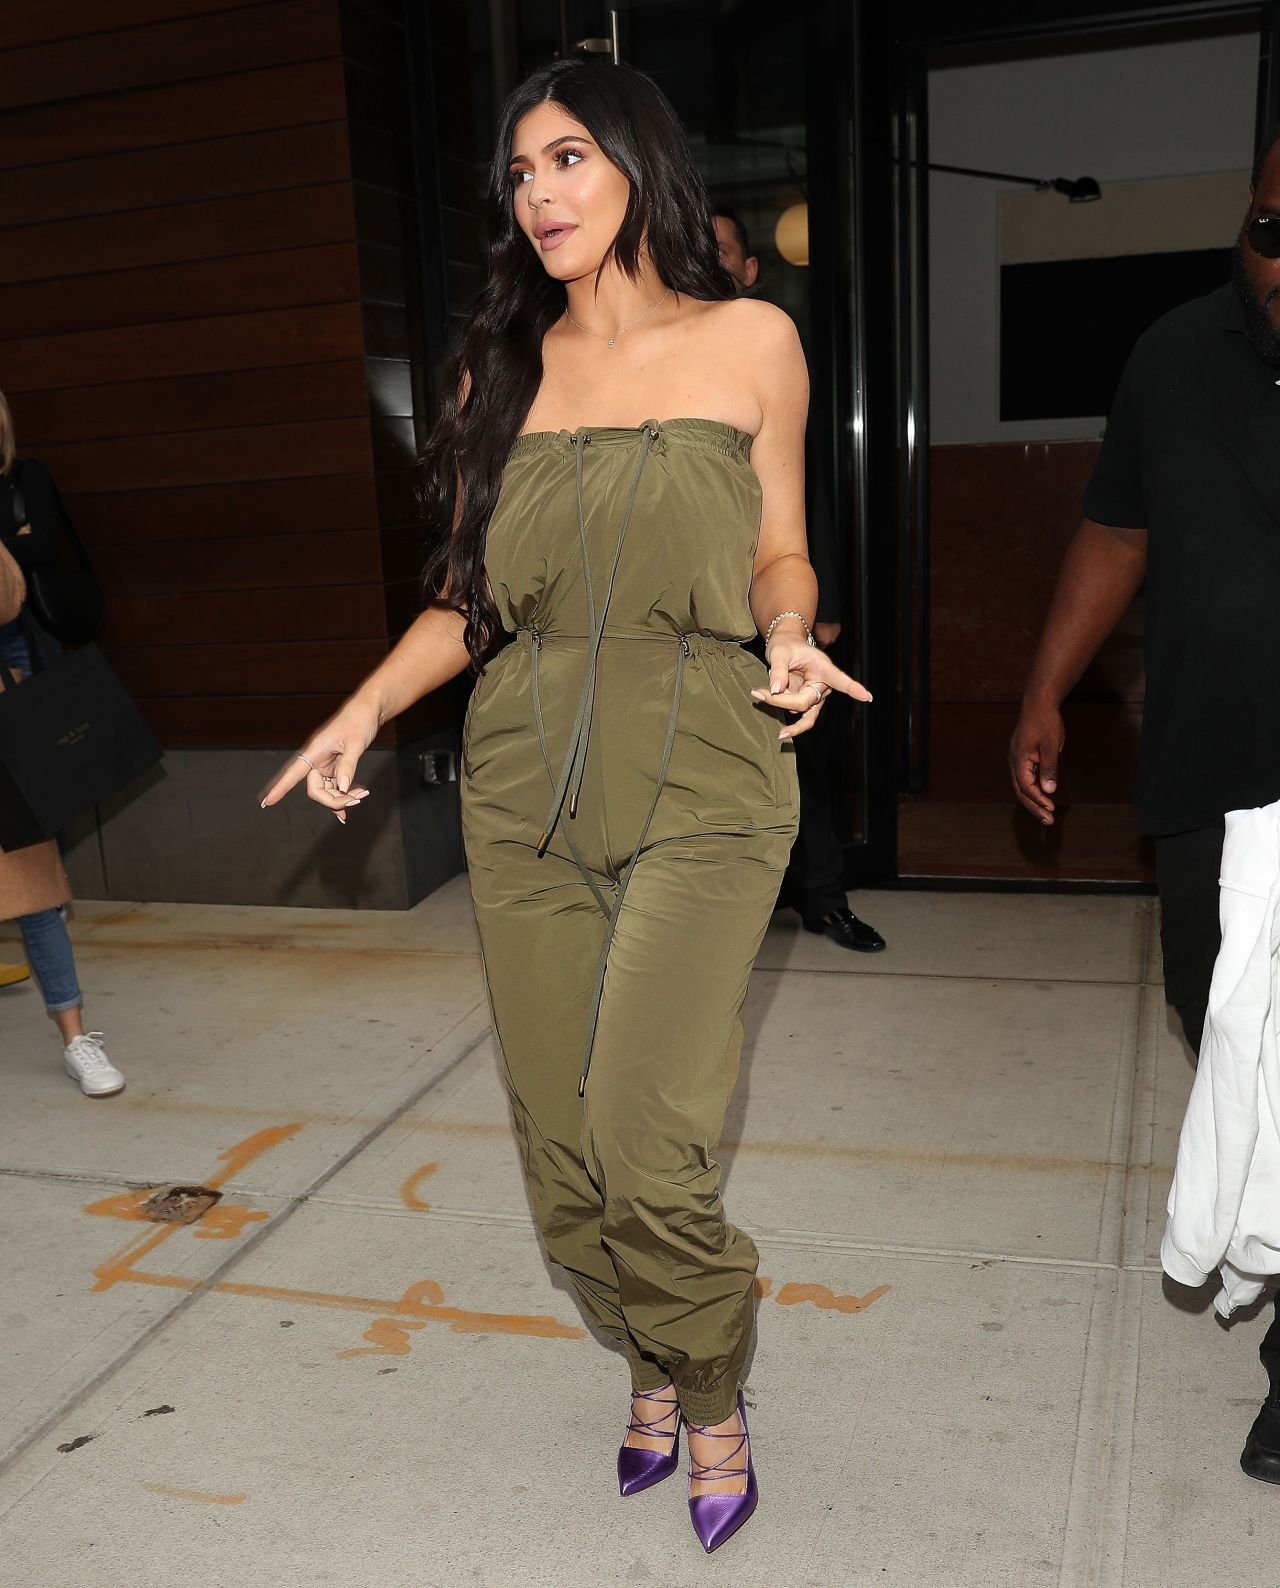 Kylie Jenner Outfits: Kylie Jenner Style And Fashion